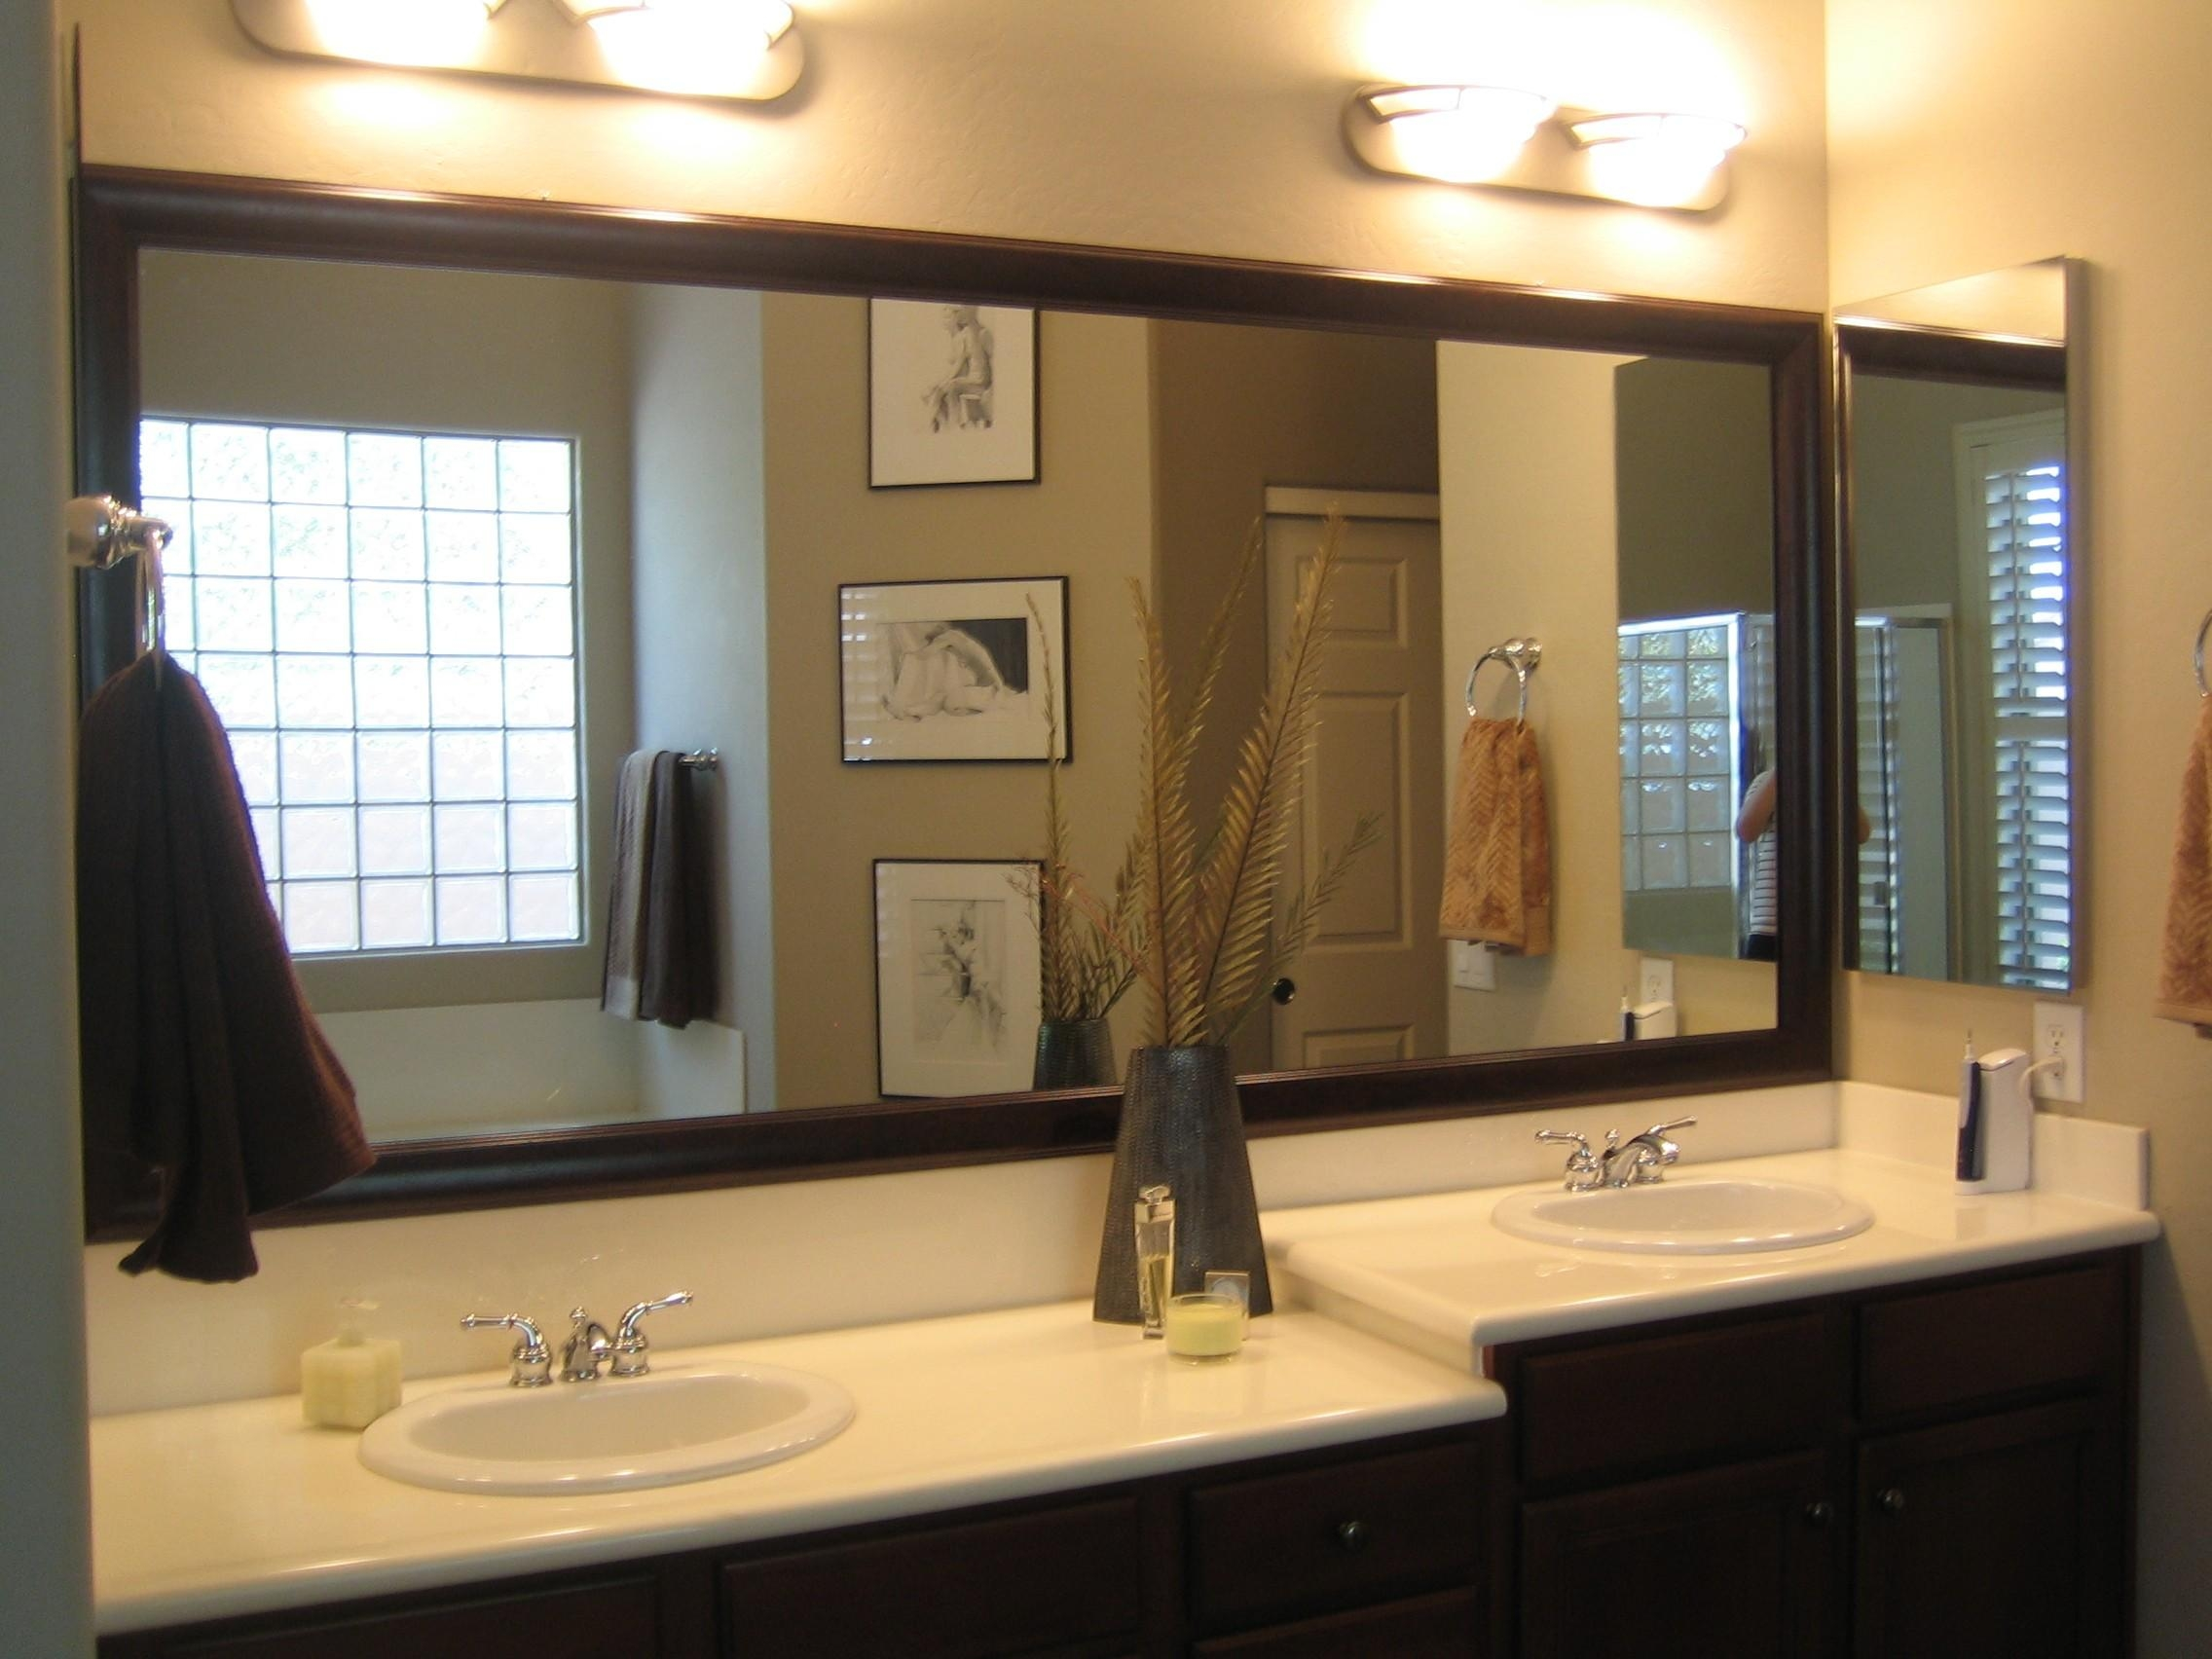 Vanity Mirror With Lights For Sale Tags : Adorable Bathroom Pertaining To Lights For Bathroom Mirrors (View 15 of 20)